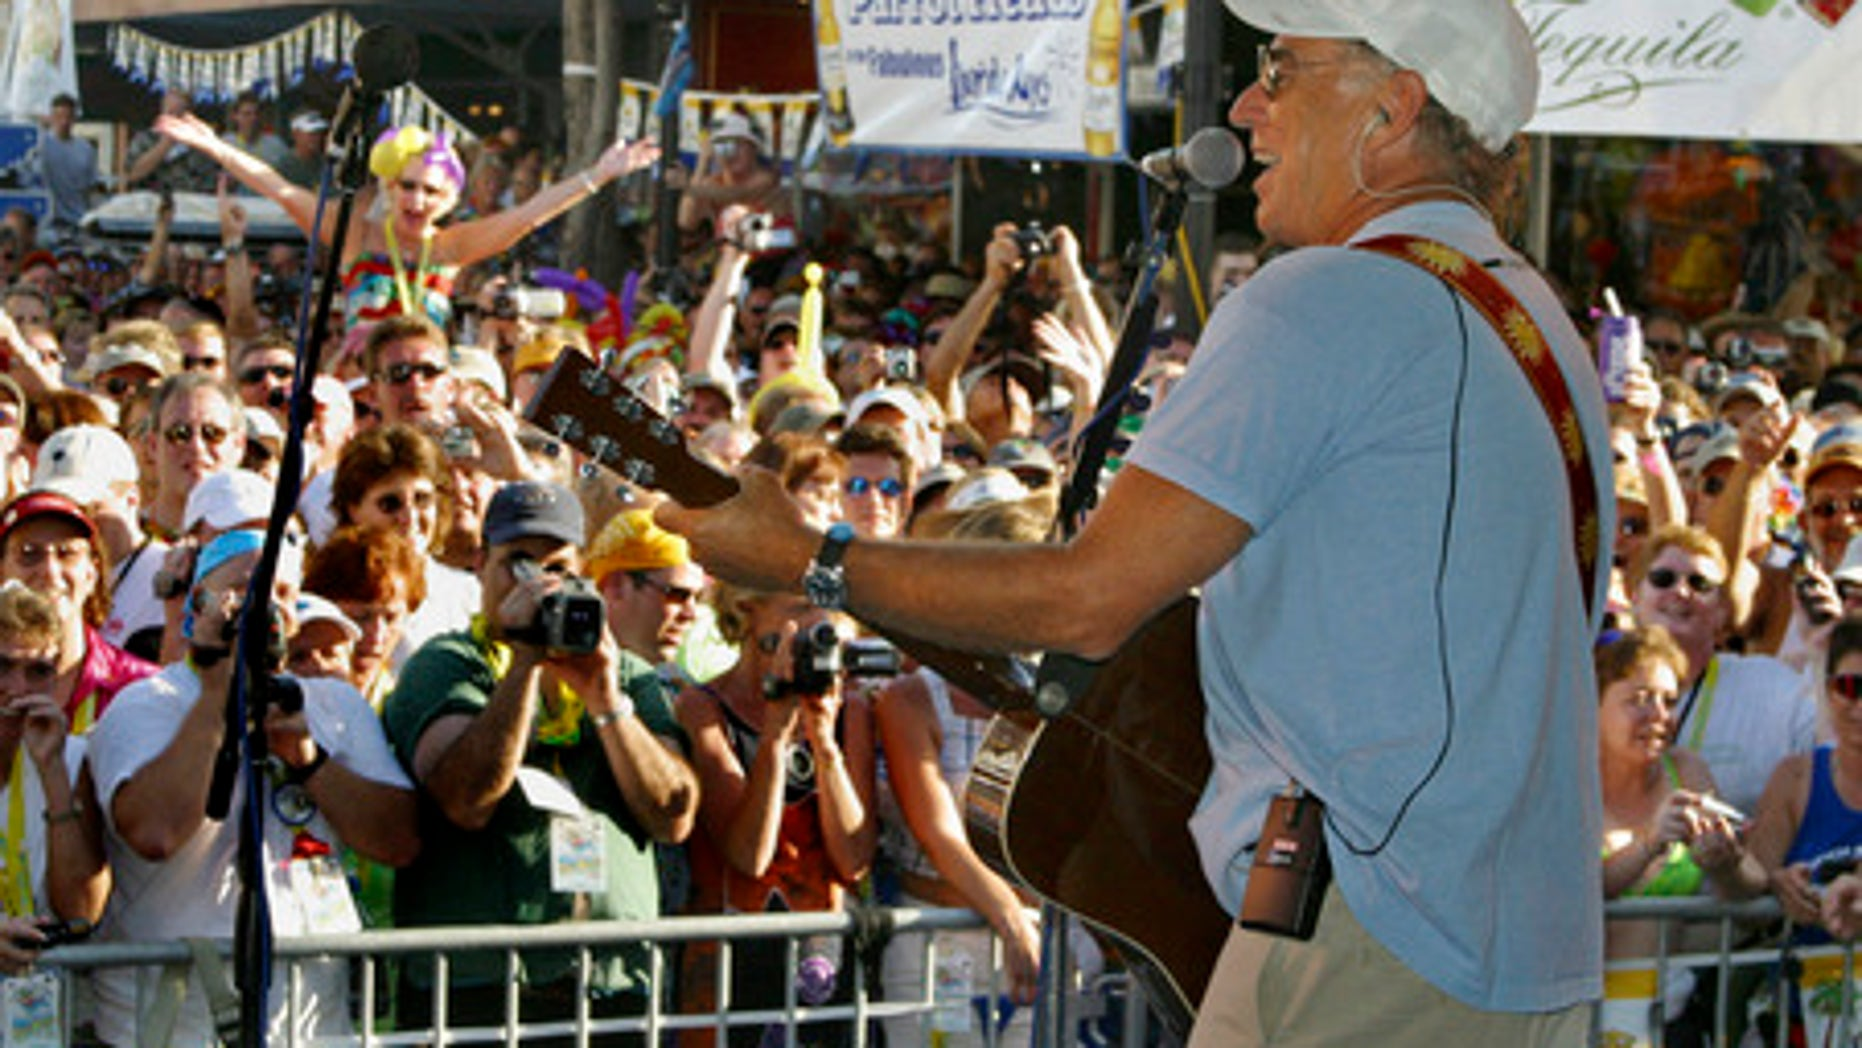 Singer Jimmy Buffett makes a surprise appearance at the annual Parrot Heads in Paradise convention in Key West, Fla.,  Friday Nov. 1, 2002. More than 3,000 of the singer's fans have gathered in Key West through Sunday, Nov. 3. There are now almost 160 Parrot Head chapters in the U.S., Australia and Canada with more than 18,000 total members. (AP Photo/Florida Keys News Bureau, Roberto Rodriguez)